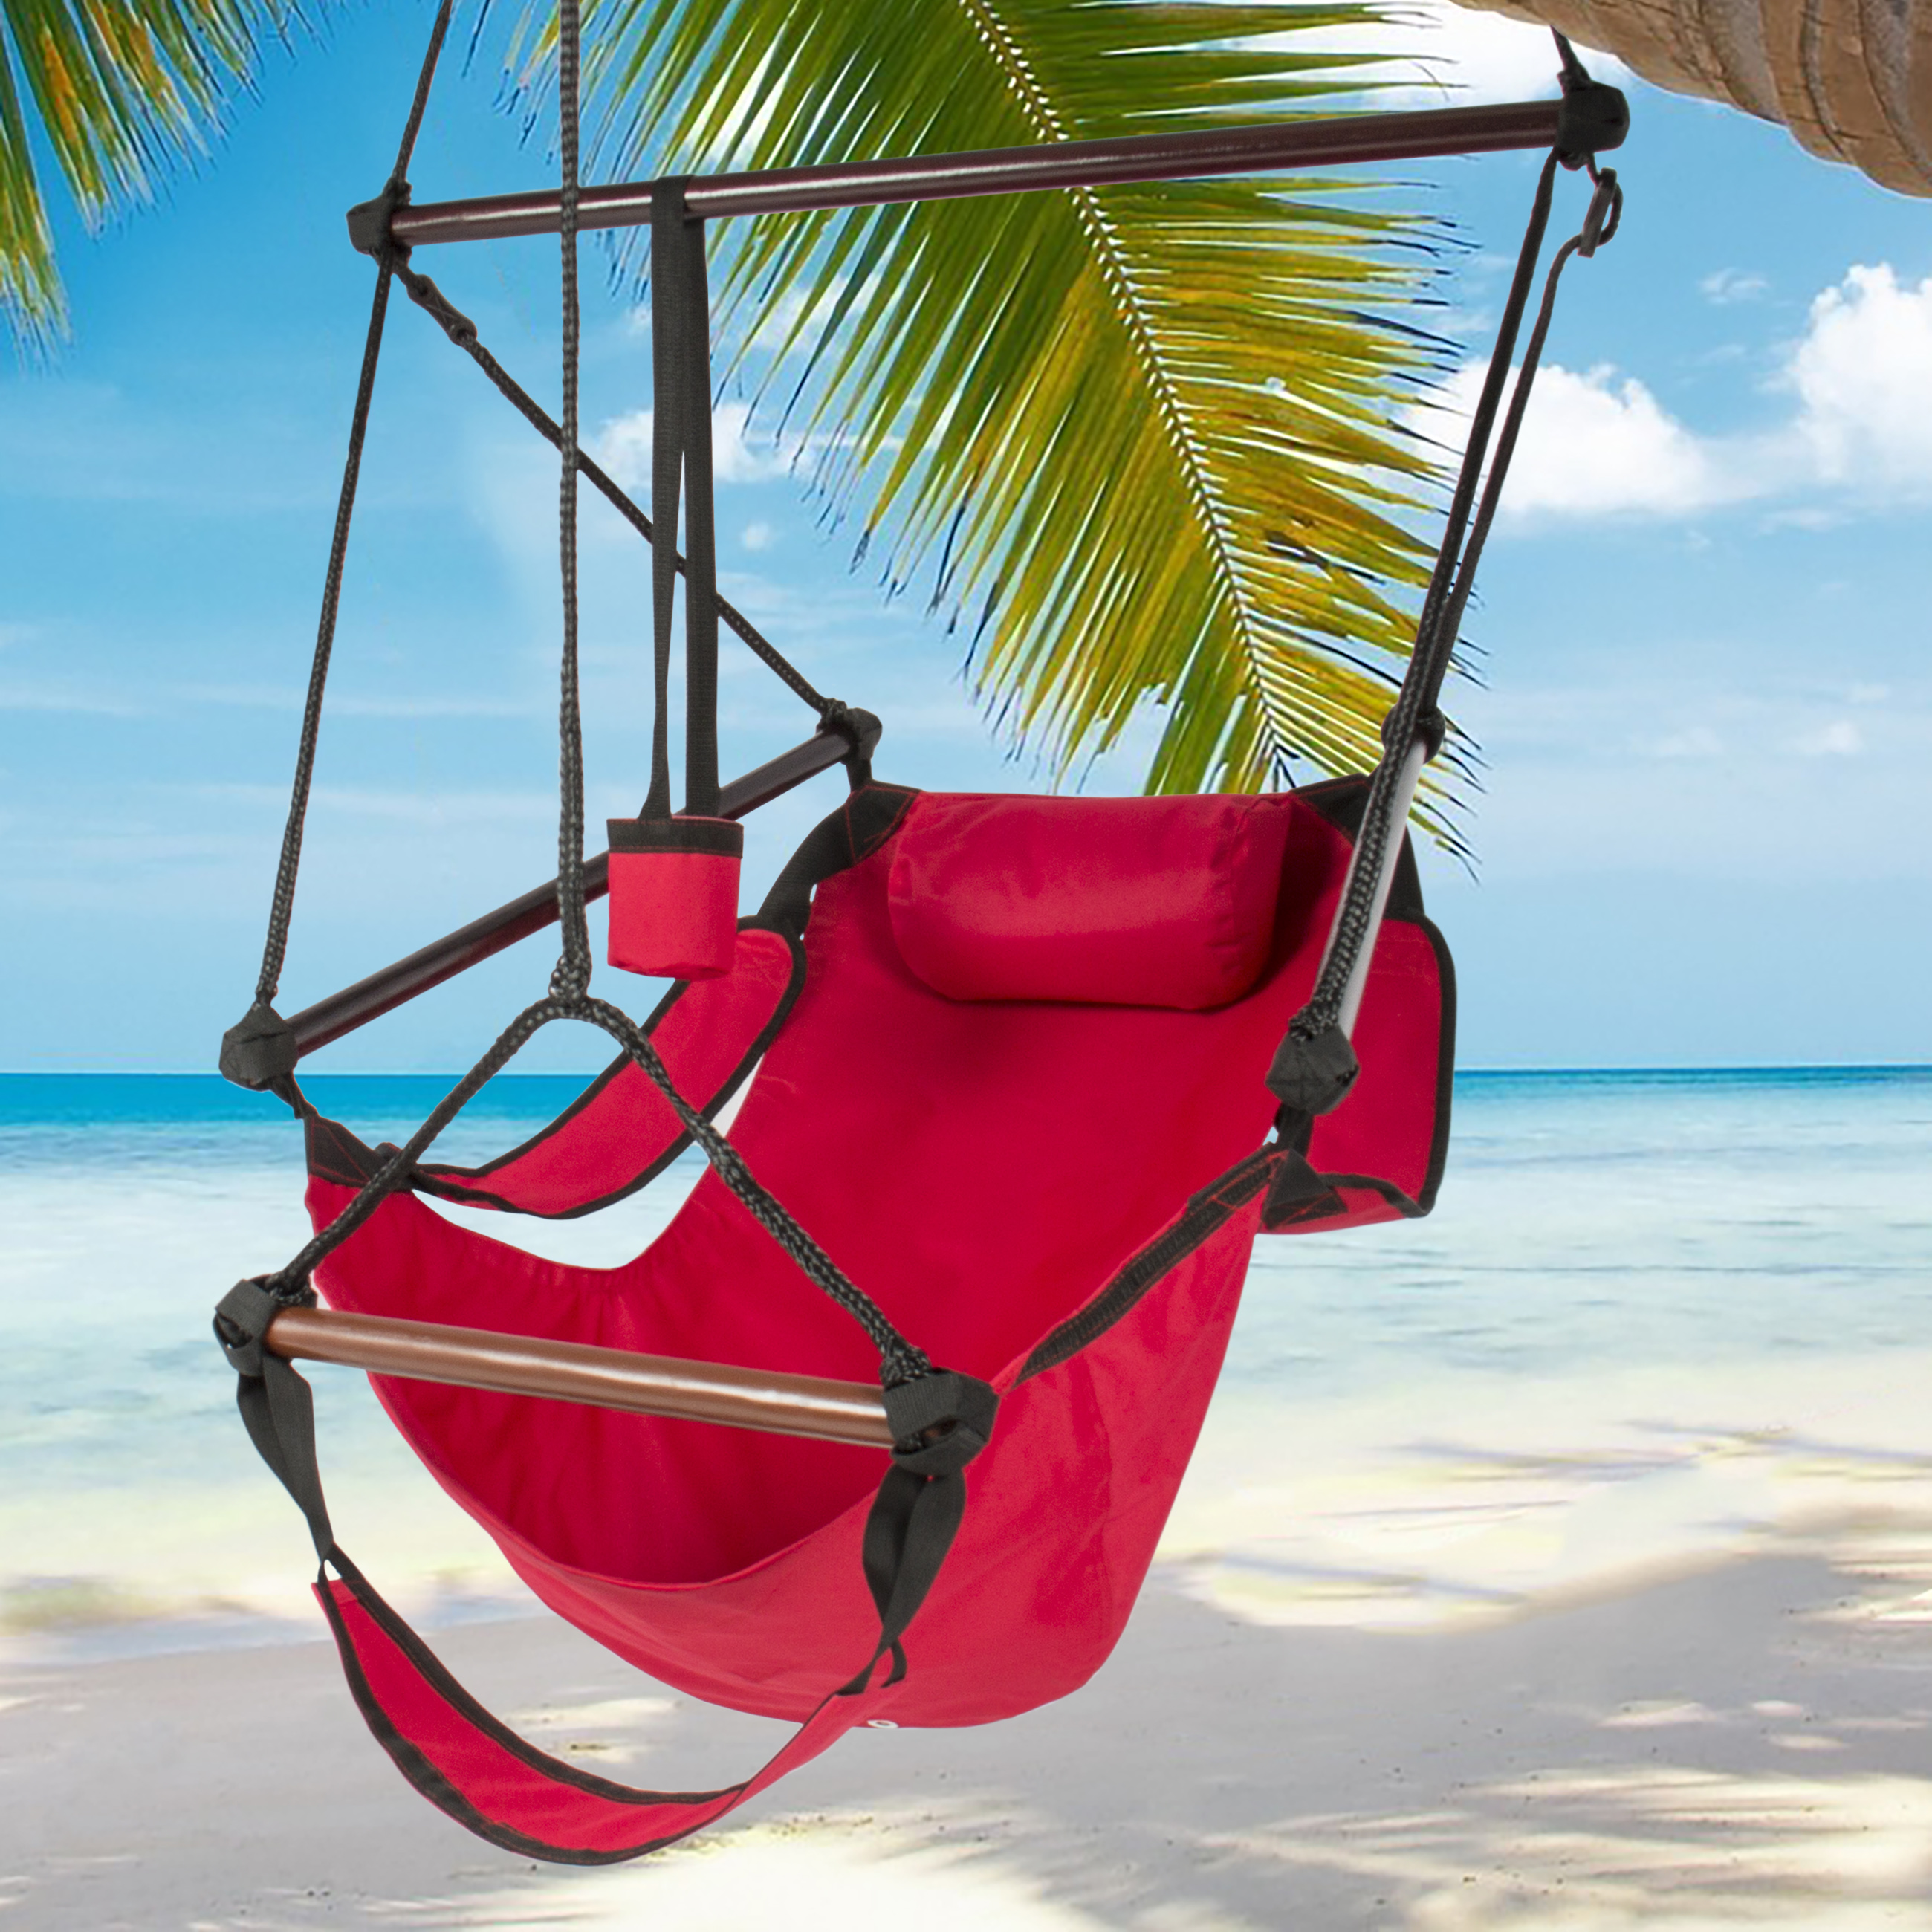 hammock hanging chair air deluxe outdoor chair solid wood 250lb   red hammock hanging chair air deluxe outdoor chair solid wood 250lb      rh   walmart